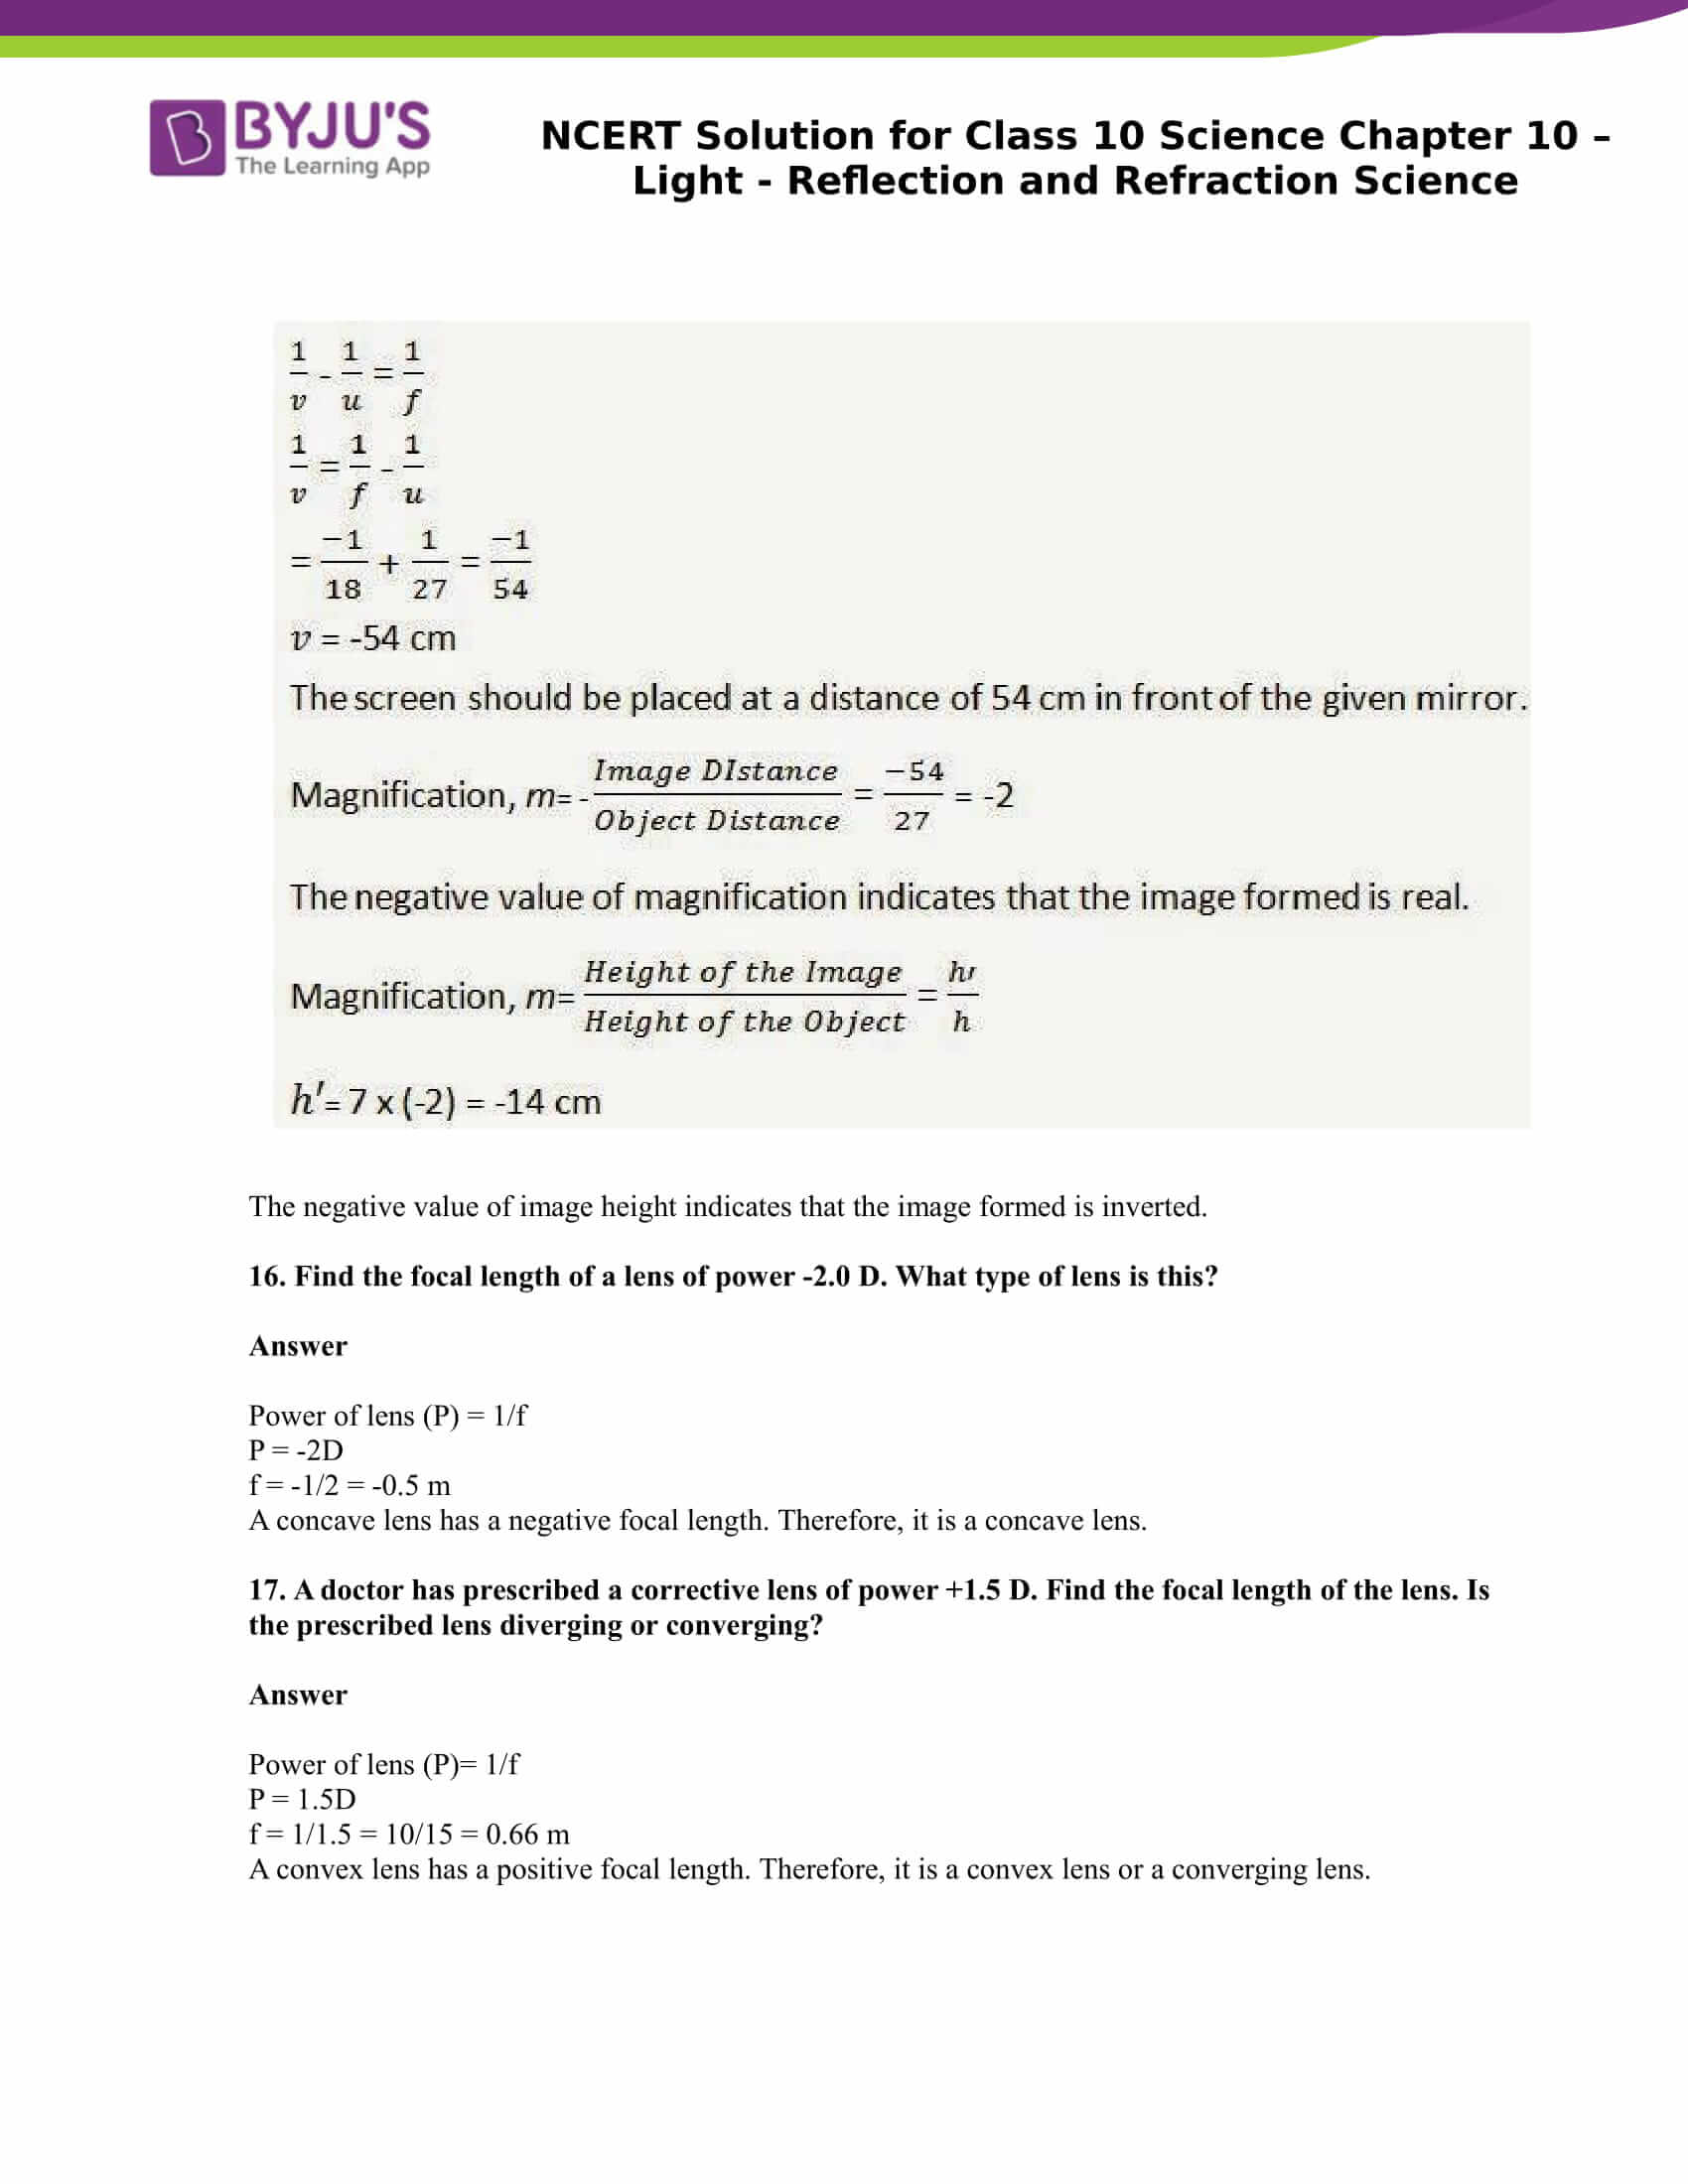 NCERT Solution for CBSE Class 10 Science Chapter 10 Light Reflection and Refraction Science Part 12